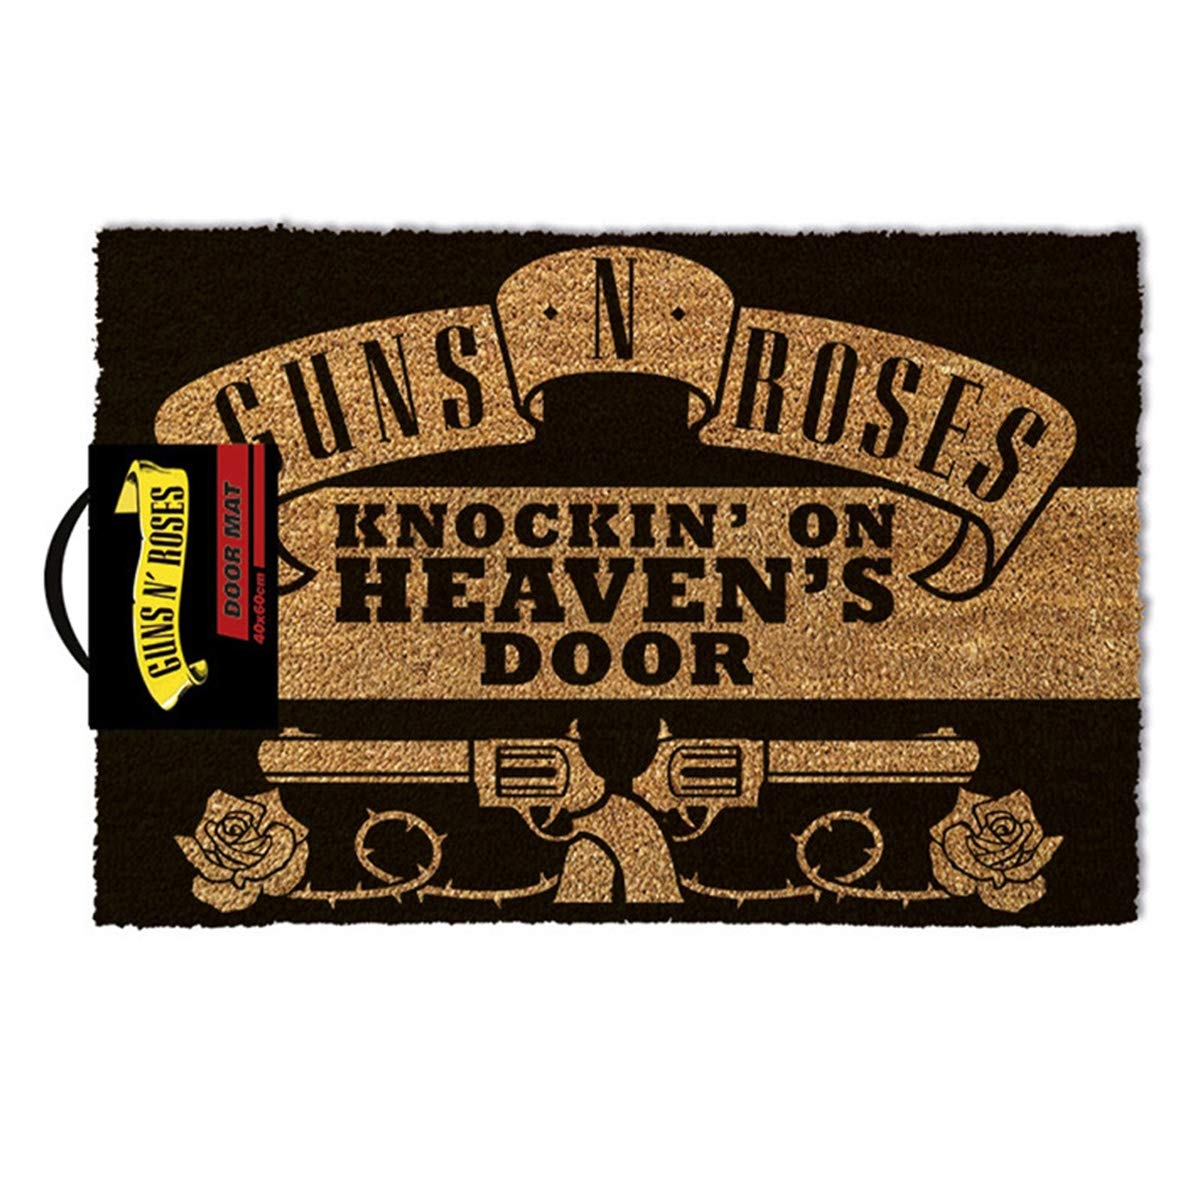 Guns N' Roses Official Knockin' On Heaven's Door Door Mat